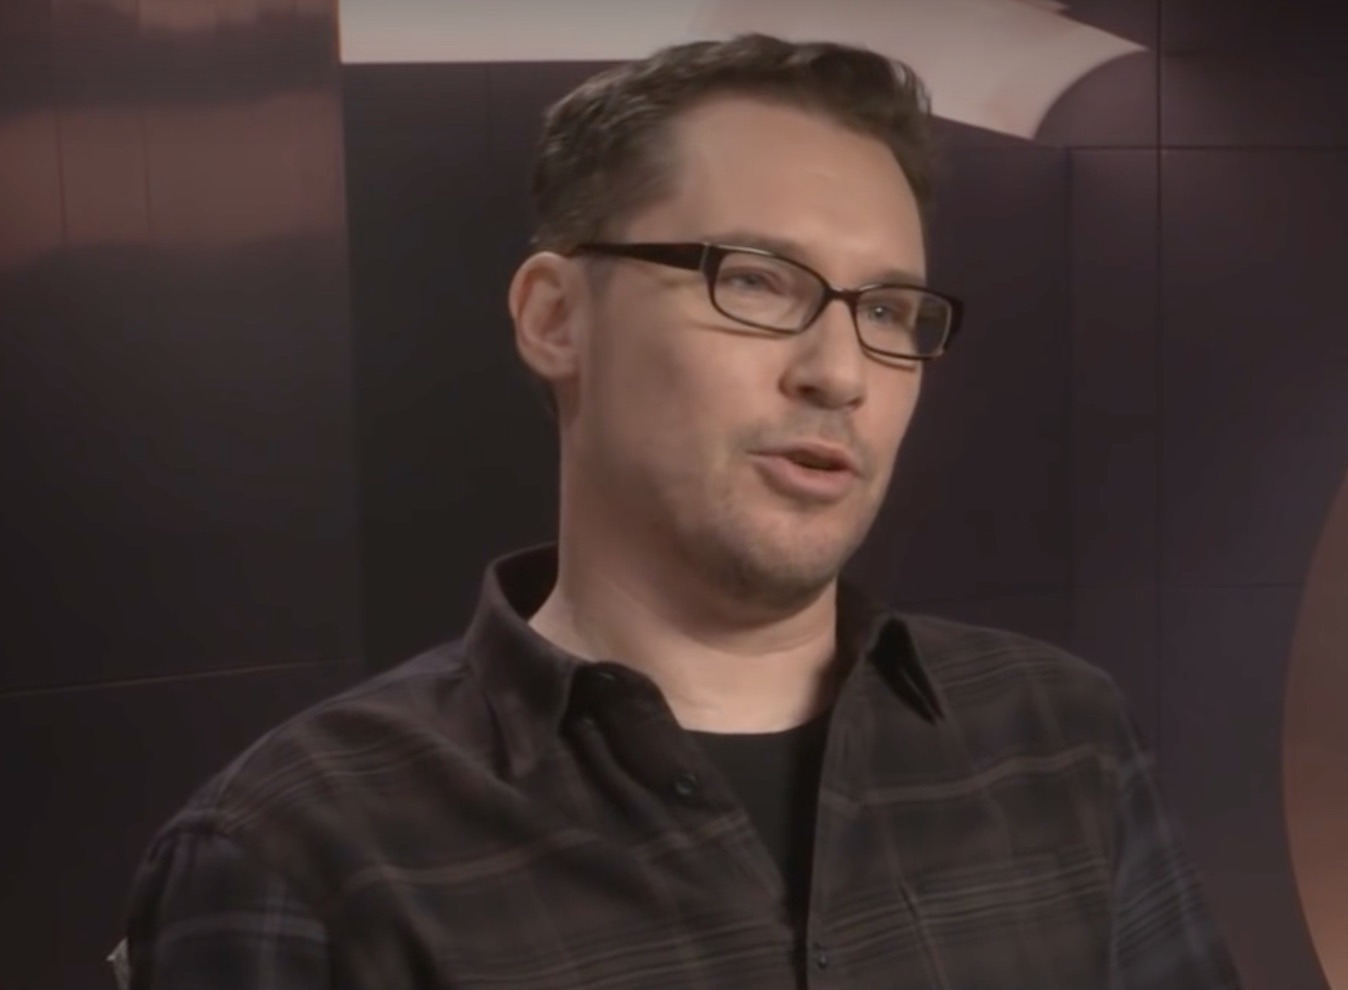 Director Bryan Singer Sued For Allegedly Raping Teen in 2003